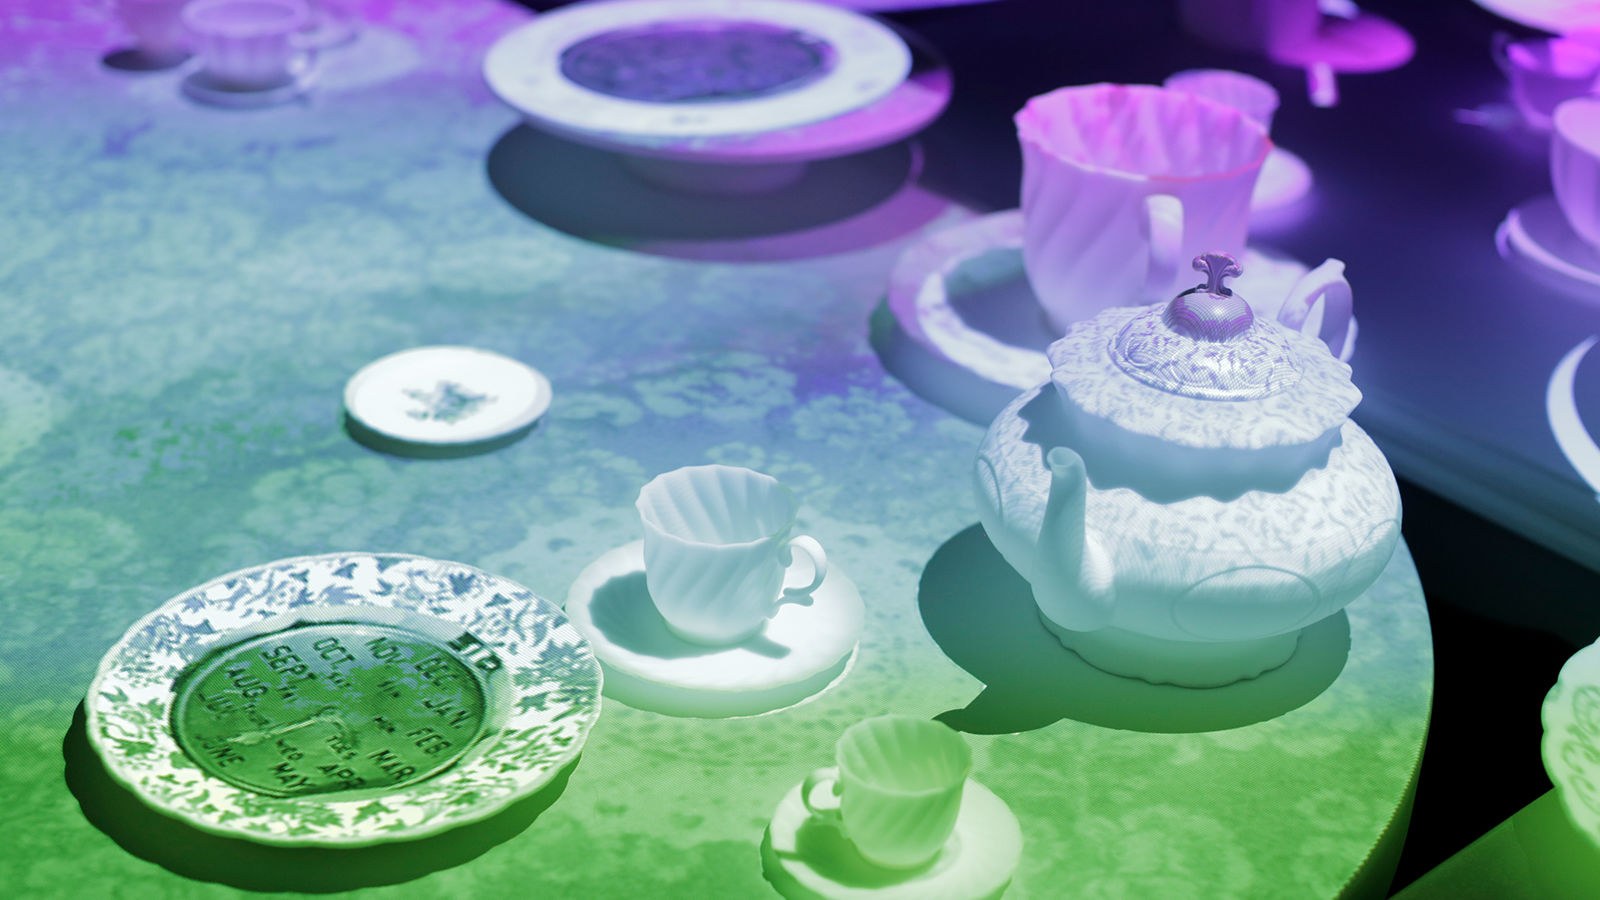 Mad Hatter's Tea Party image /projects/mad-hatters/3.jpg